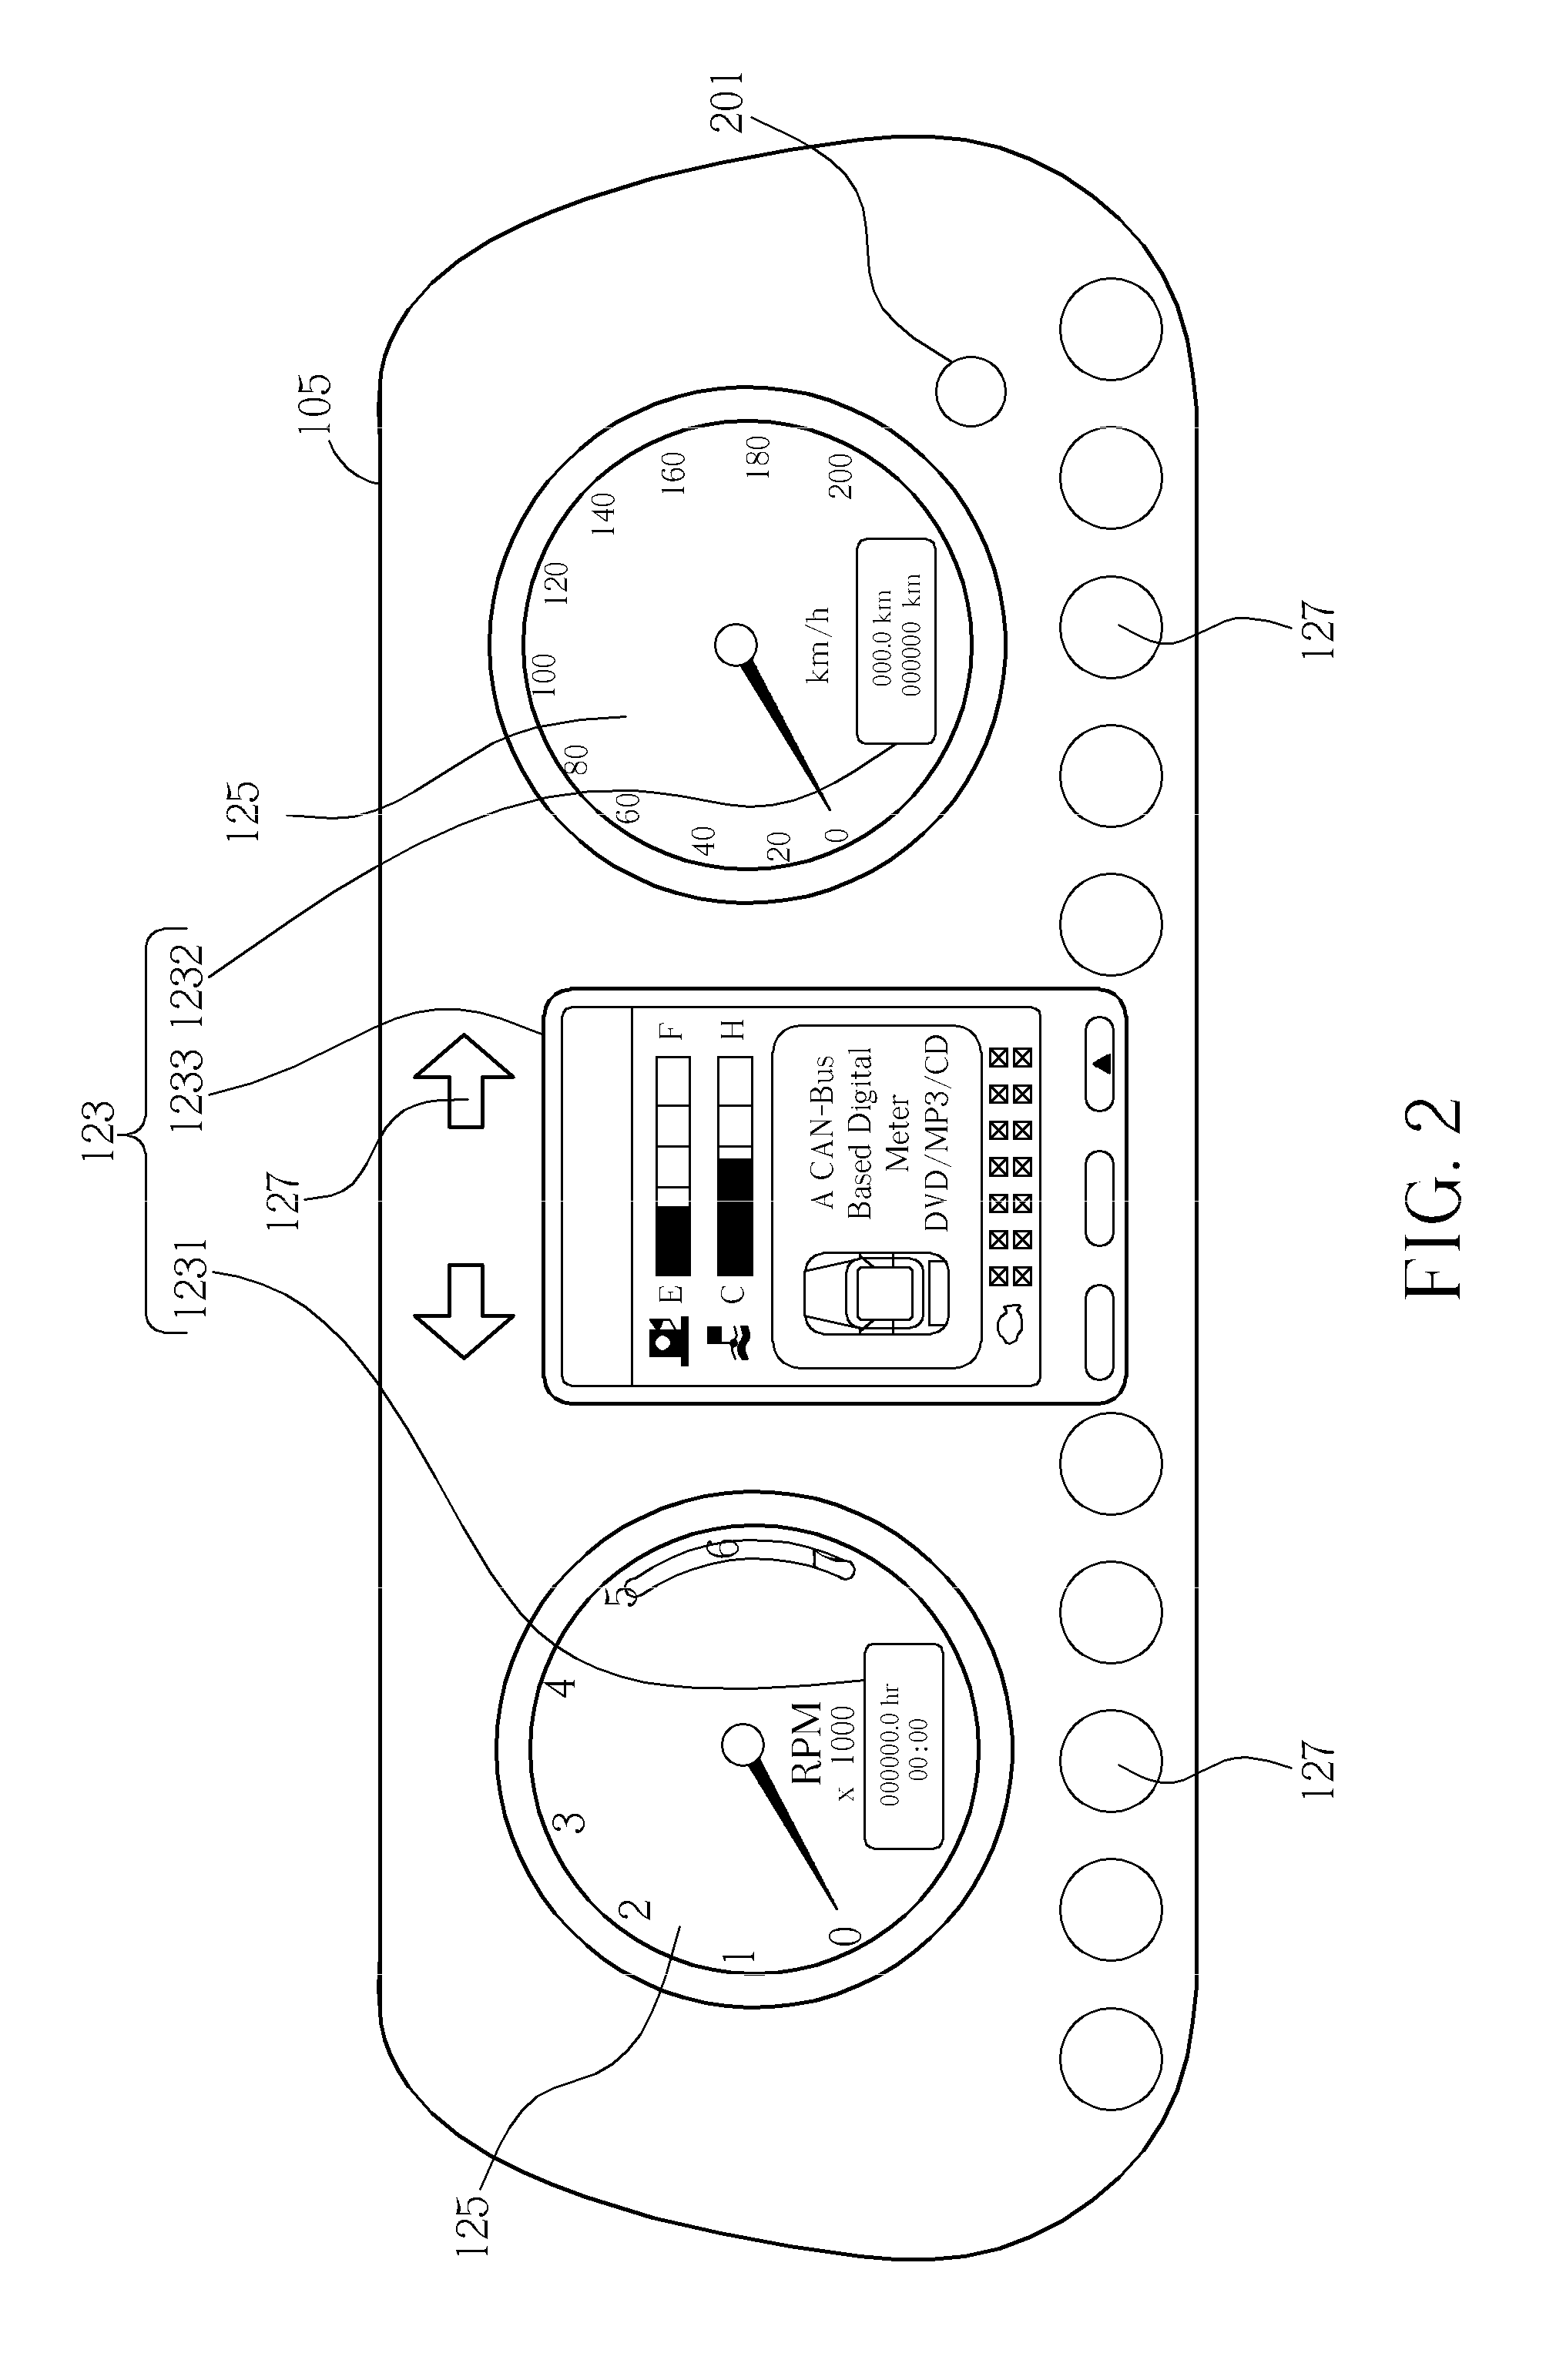 patent us20110072123 auto meter system with controller area Auto Meter Tach Wiring Diagram Wires patent drawing